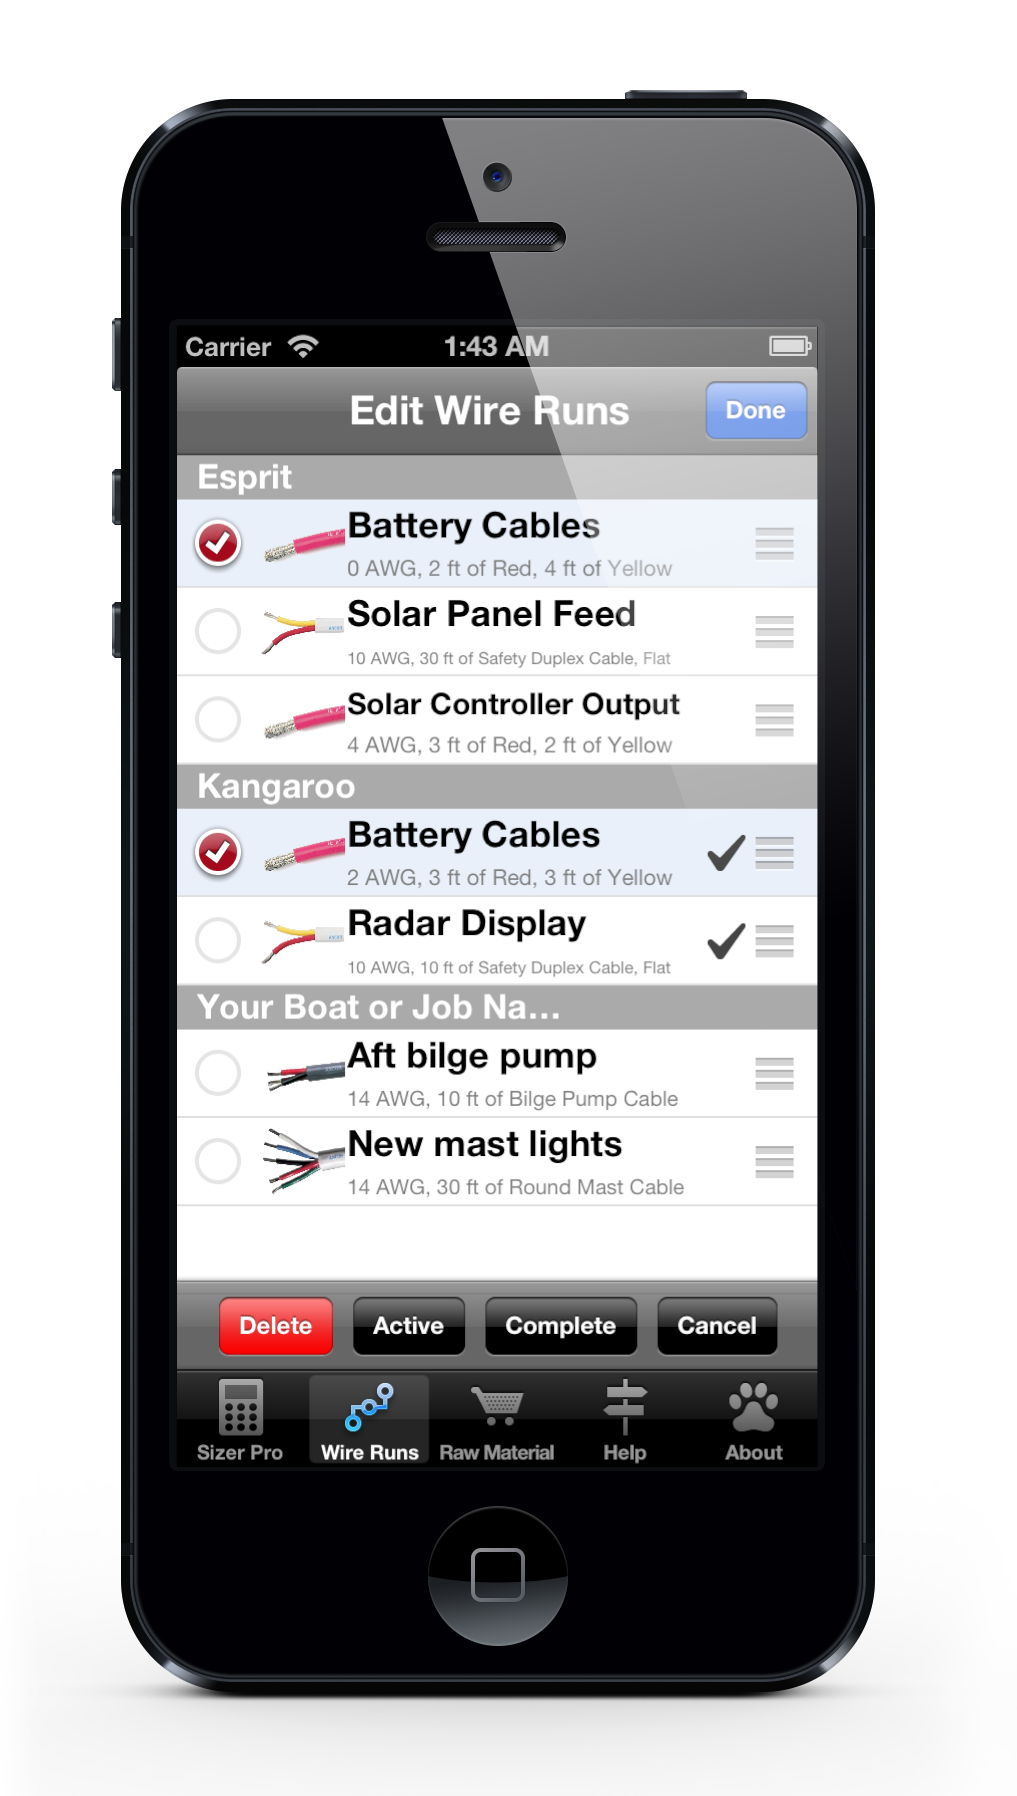 DCWS iP5 - Wire Run List in Edit Mode.png